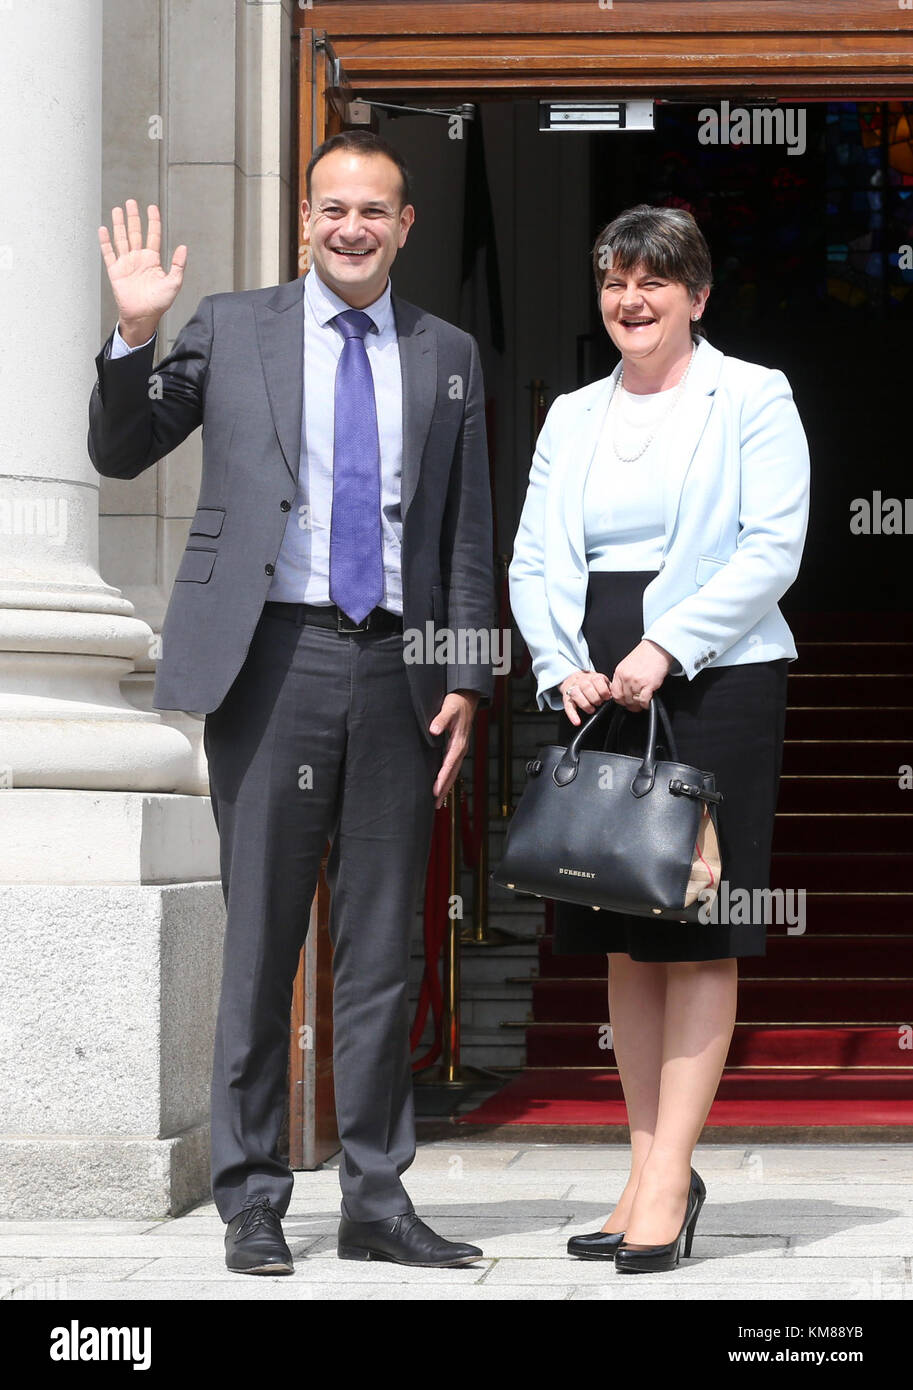 16/06/2017 Leo Varadkar and Arlene Foster. Pictured on the steps of Government Buildings in Dublin today is newly - Stock Image